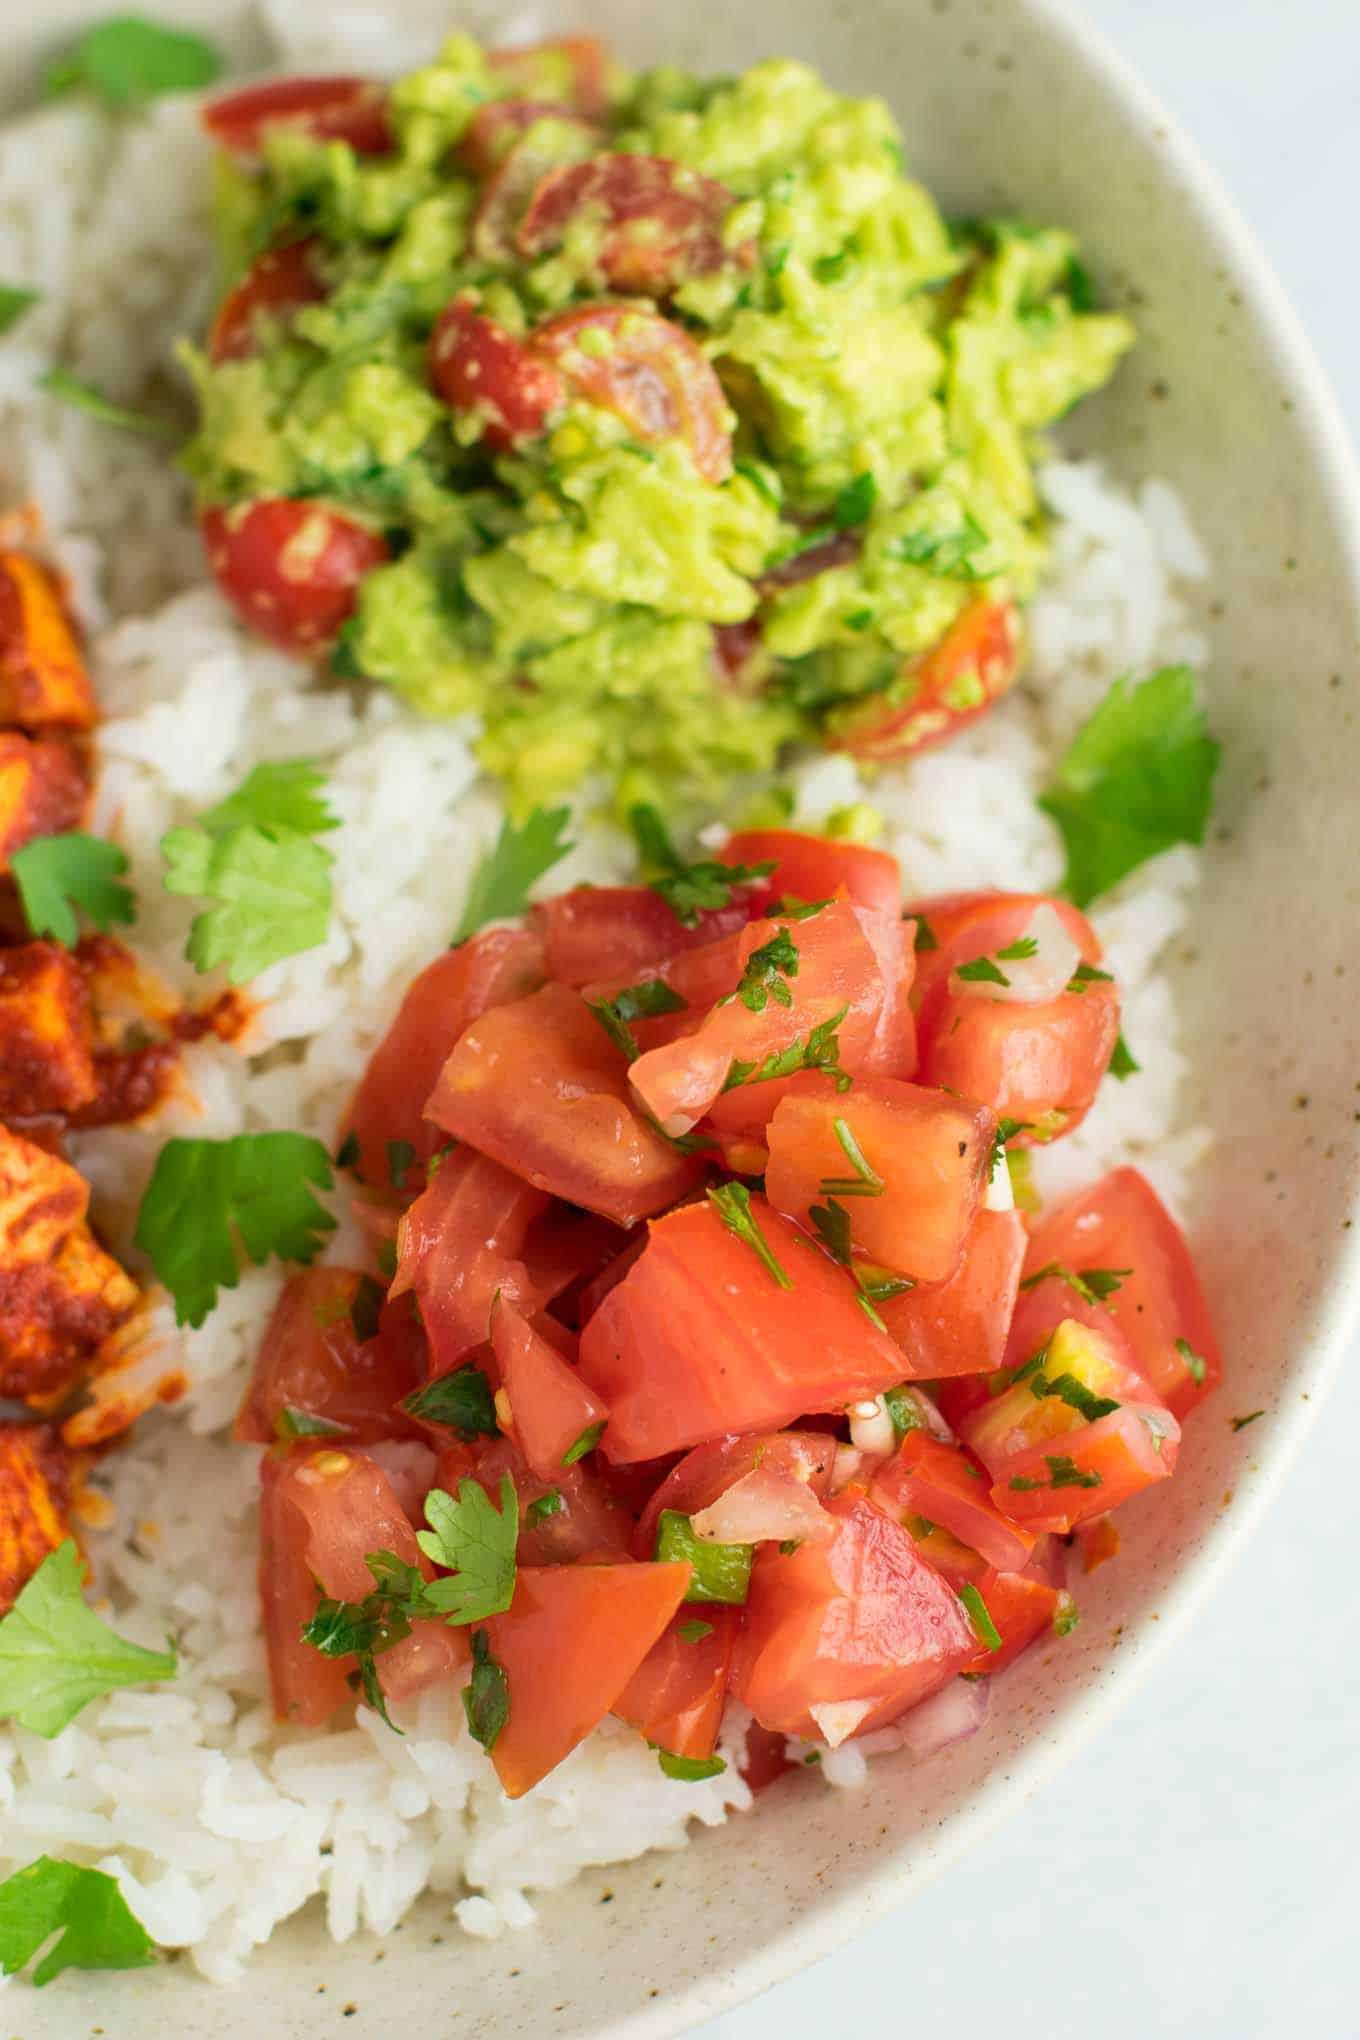 Easy enchilada tofu burrito bowls with homemade guacamole and salsa. Bring chipotle to your kitchen with this delicious recipe! #vegan #burritobowls #tofuburritobowls